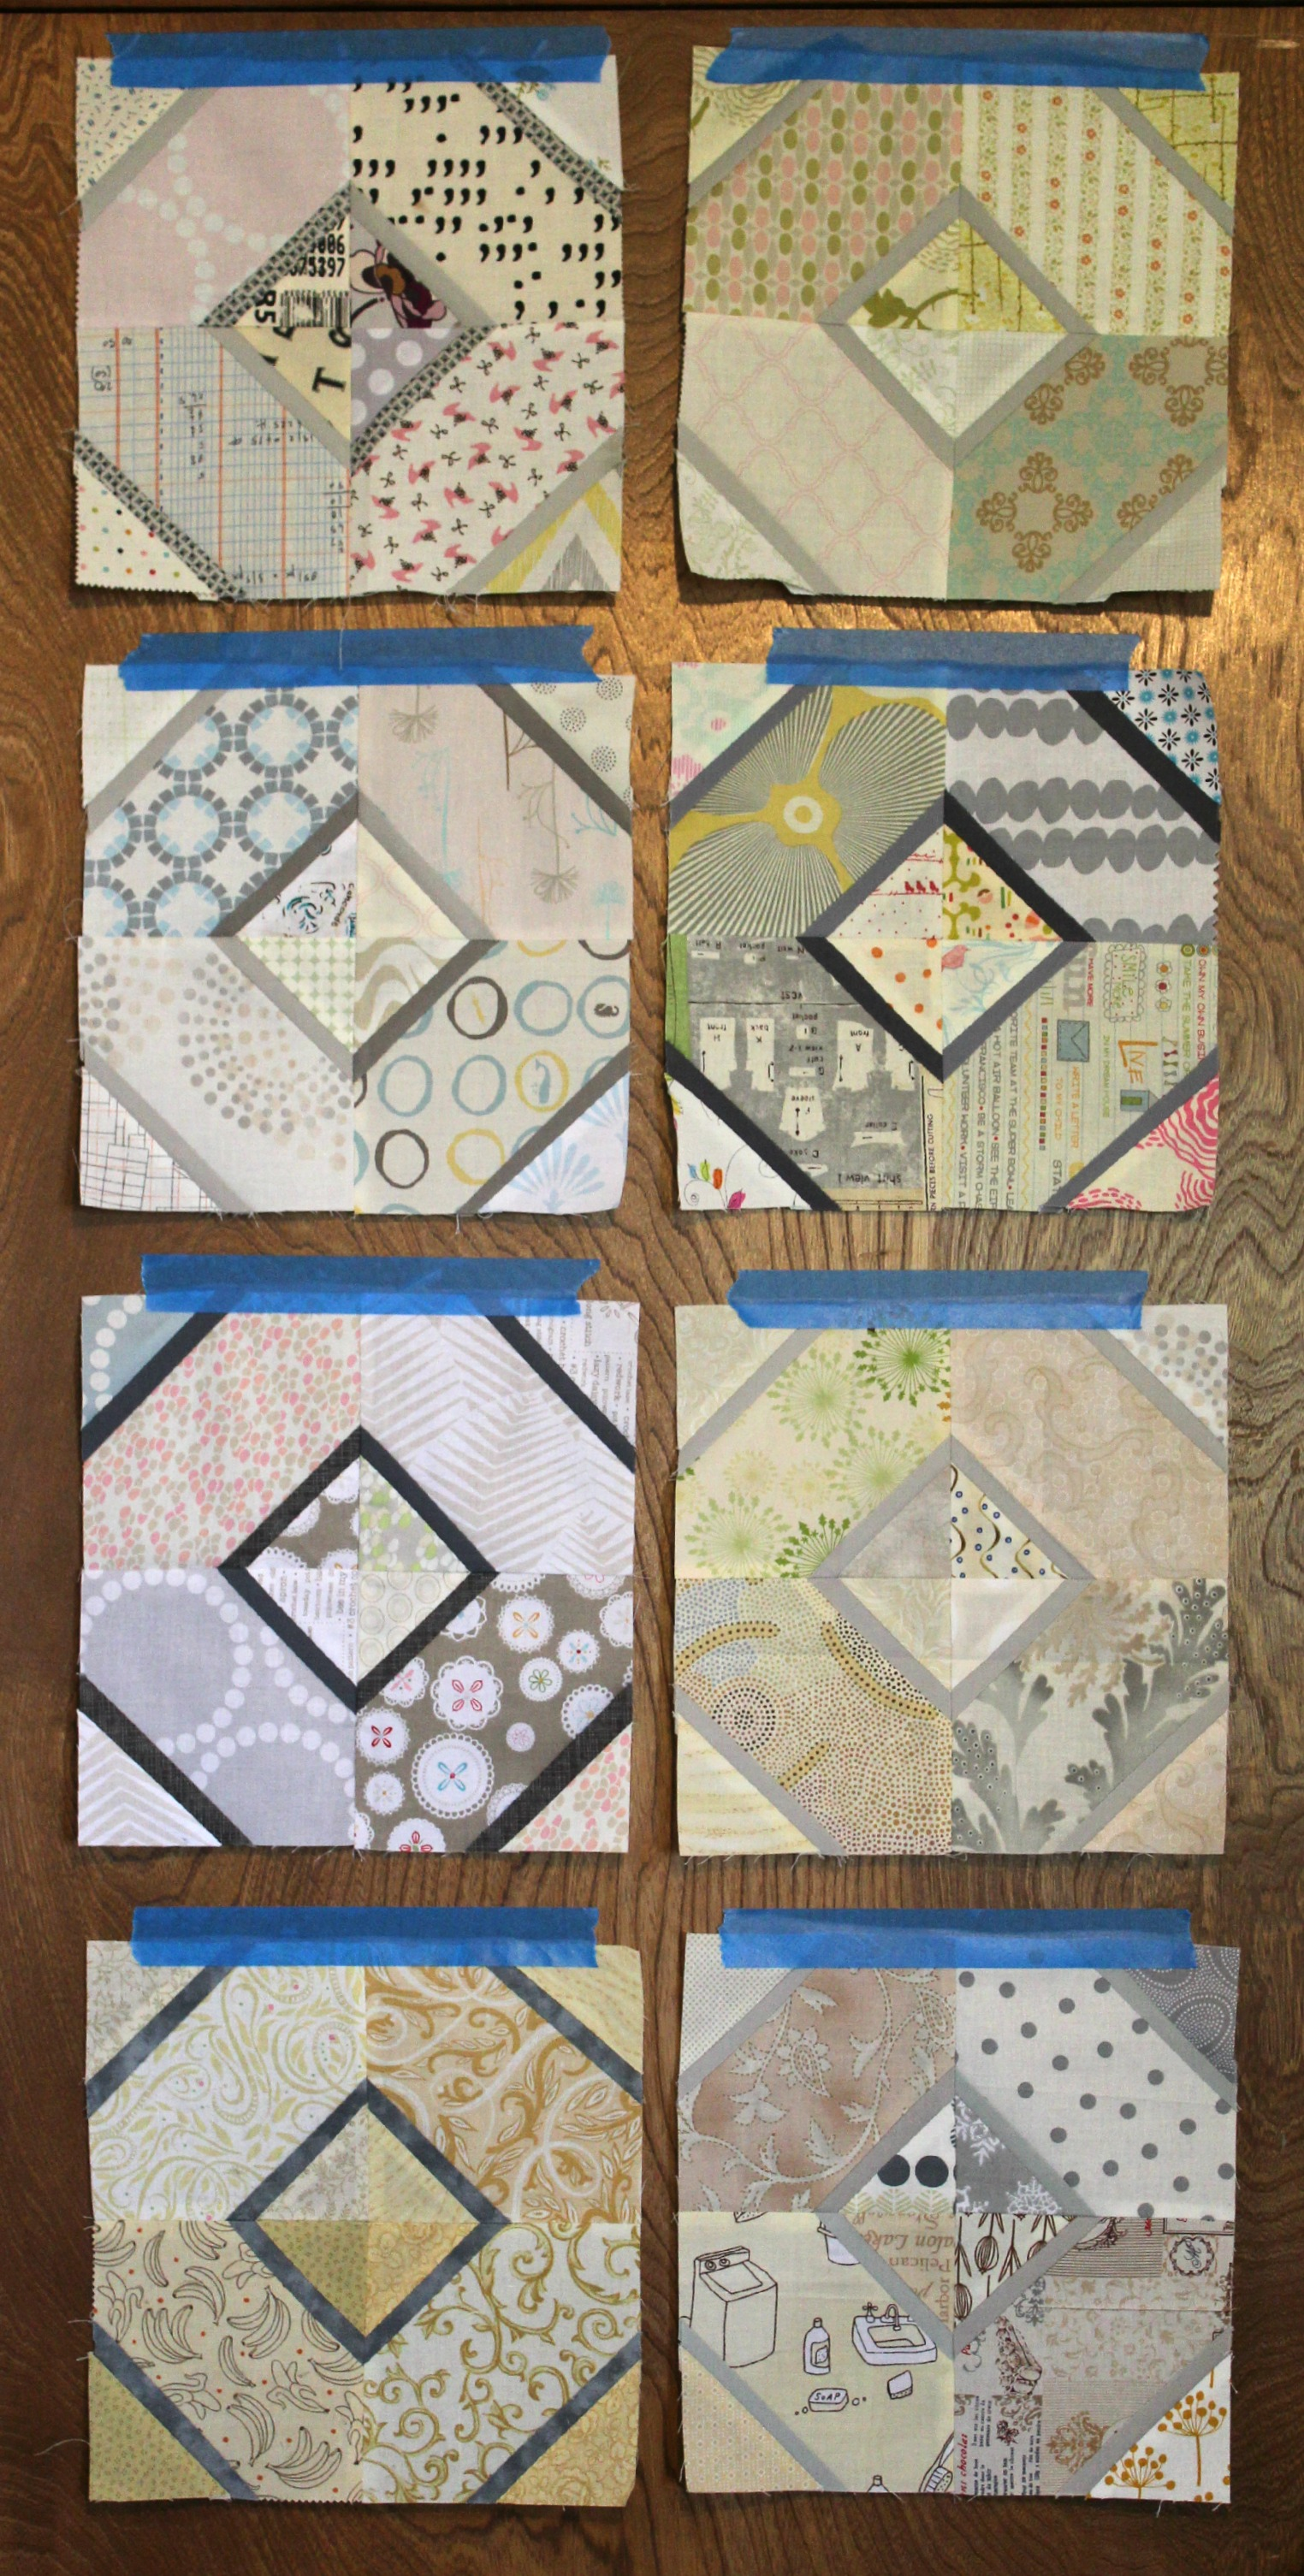 Hugs & Kisses blocks 1-8